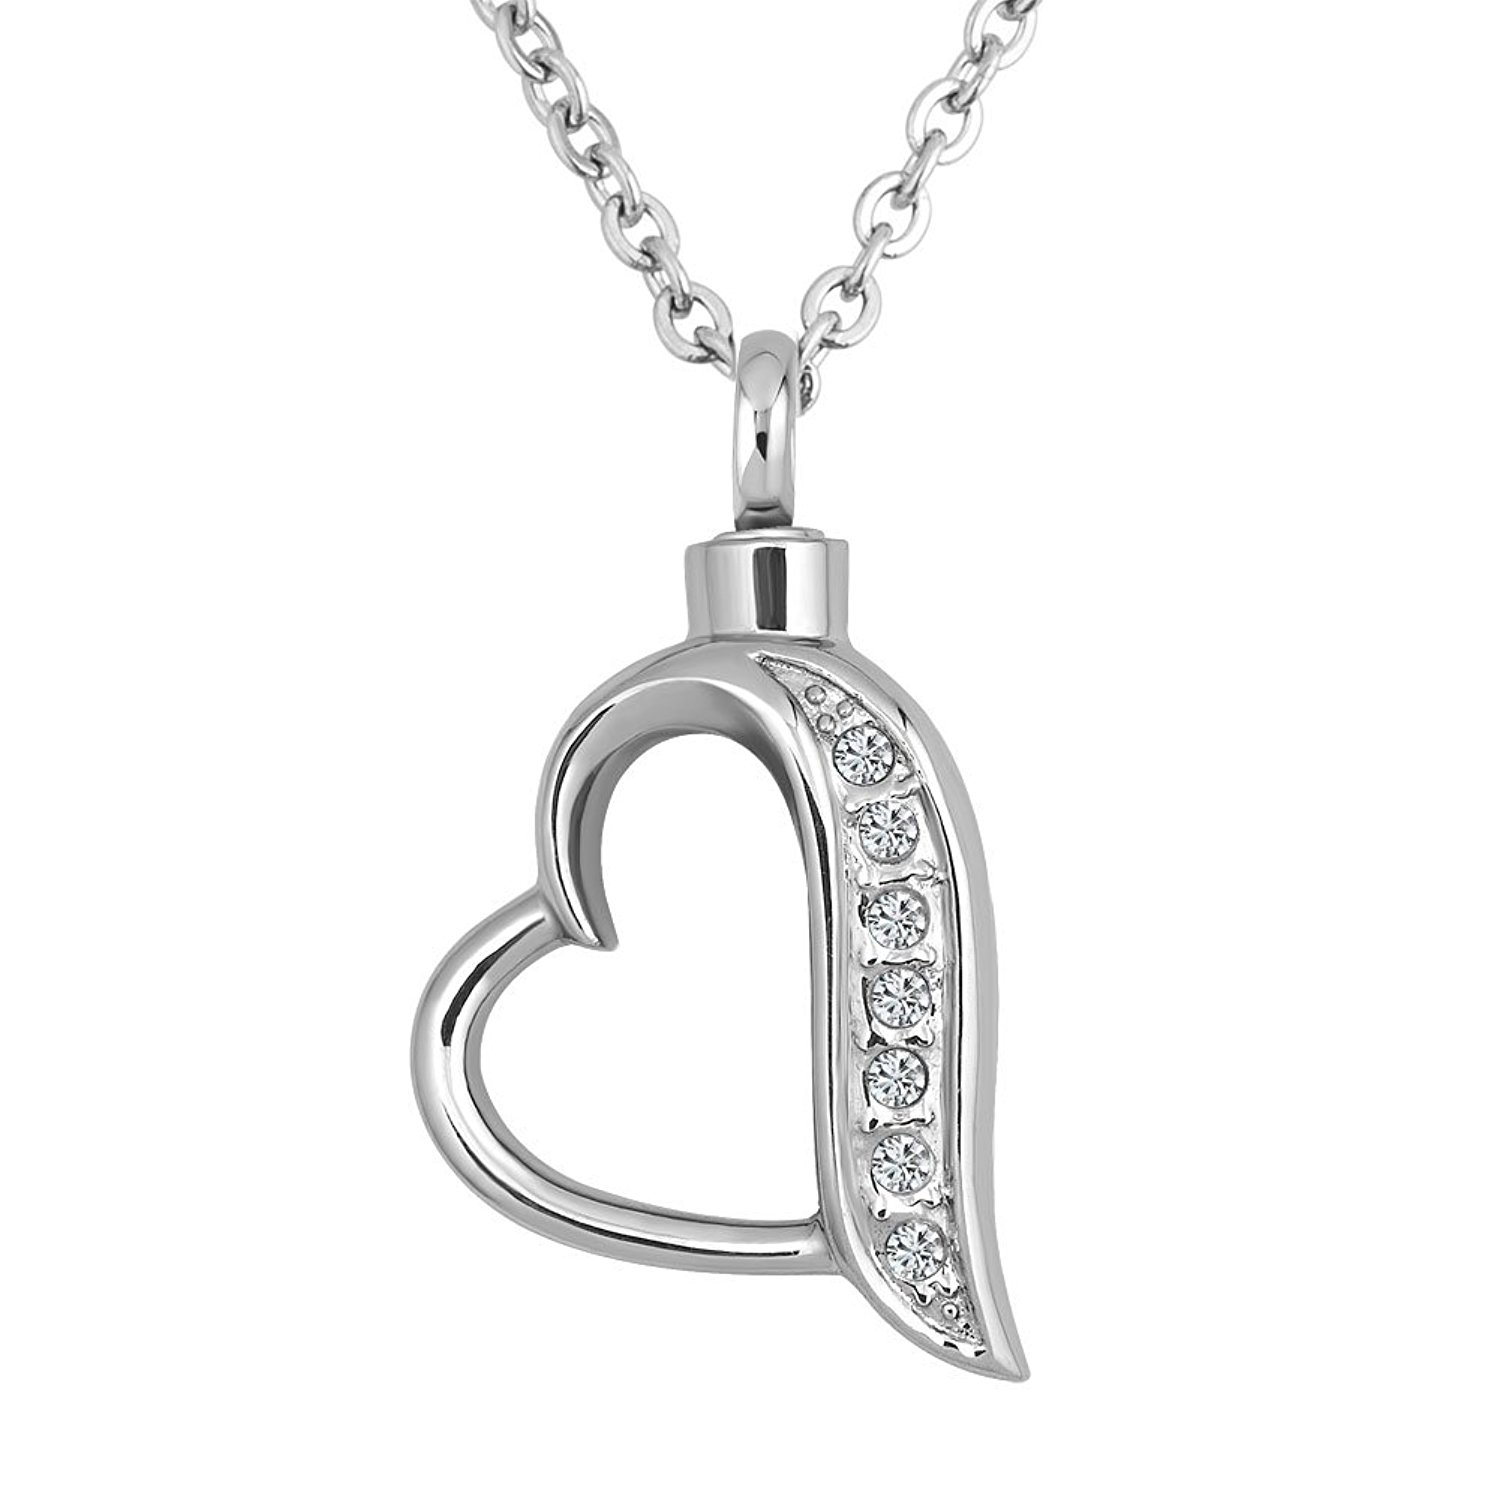 bag gift ash keepsake memorial product ashes lily necklace store rbvaevetnq heart funnel crown with pendant jewelry chain cremation and urn